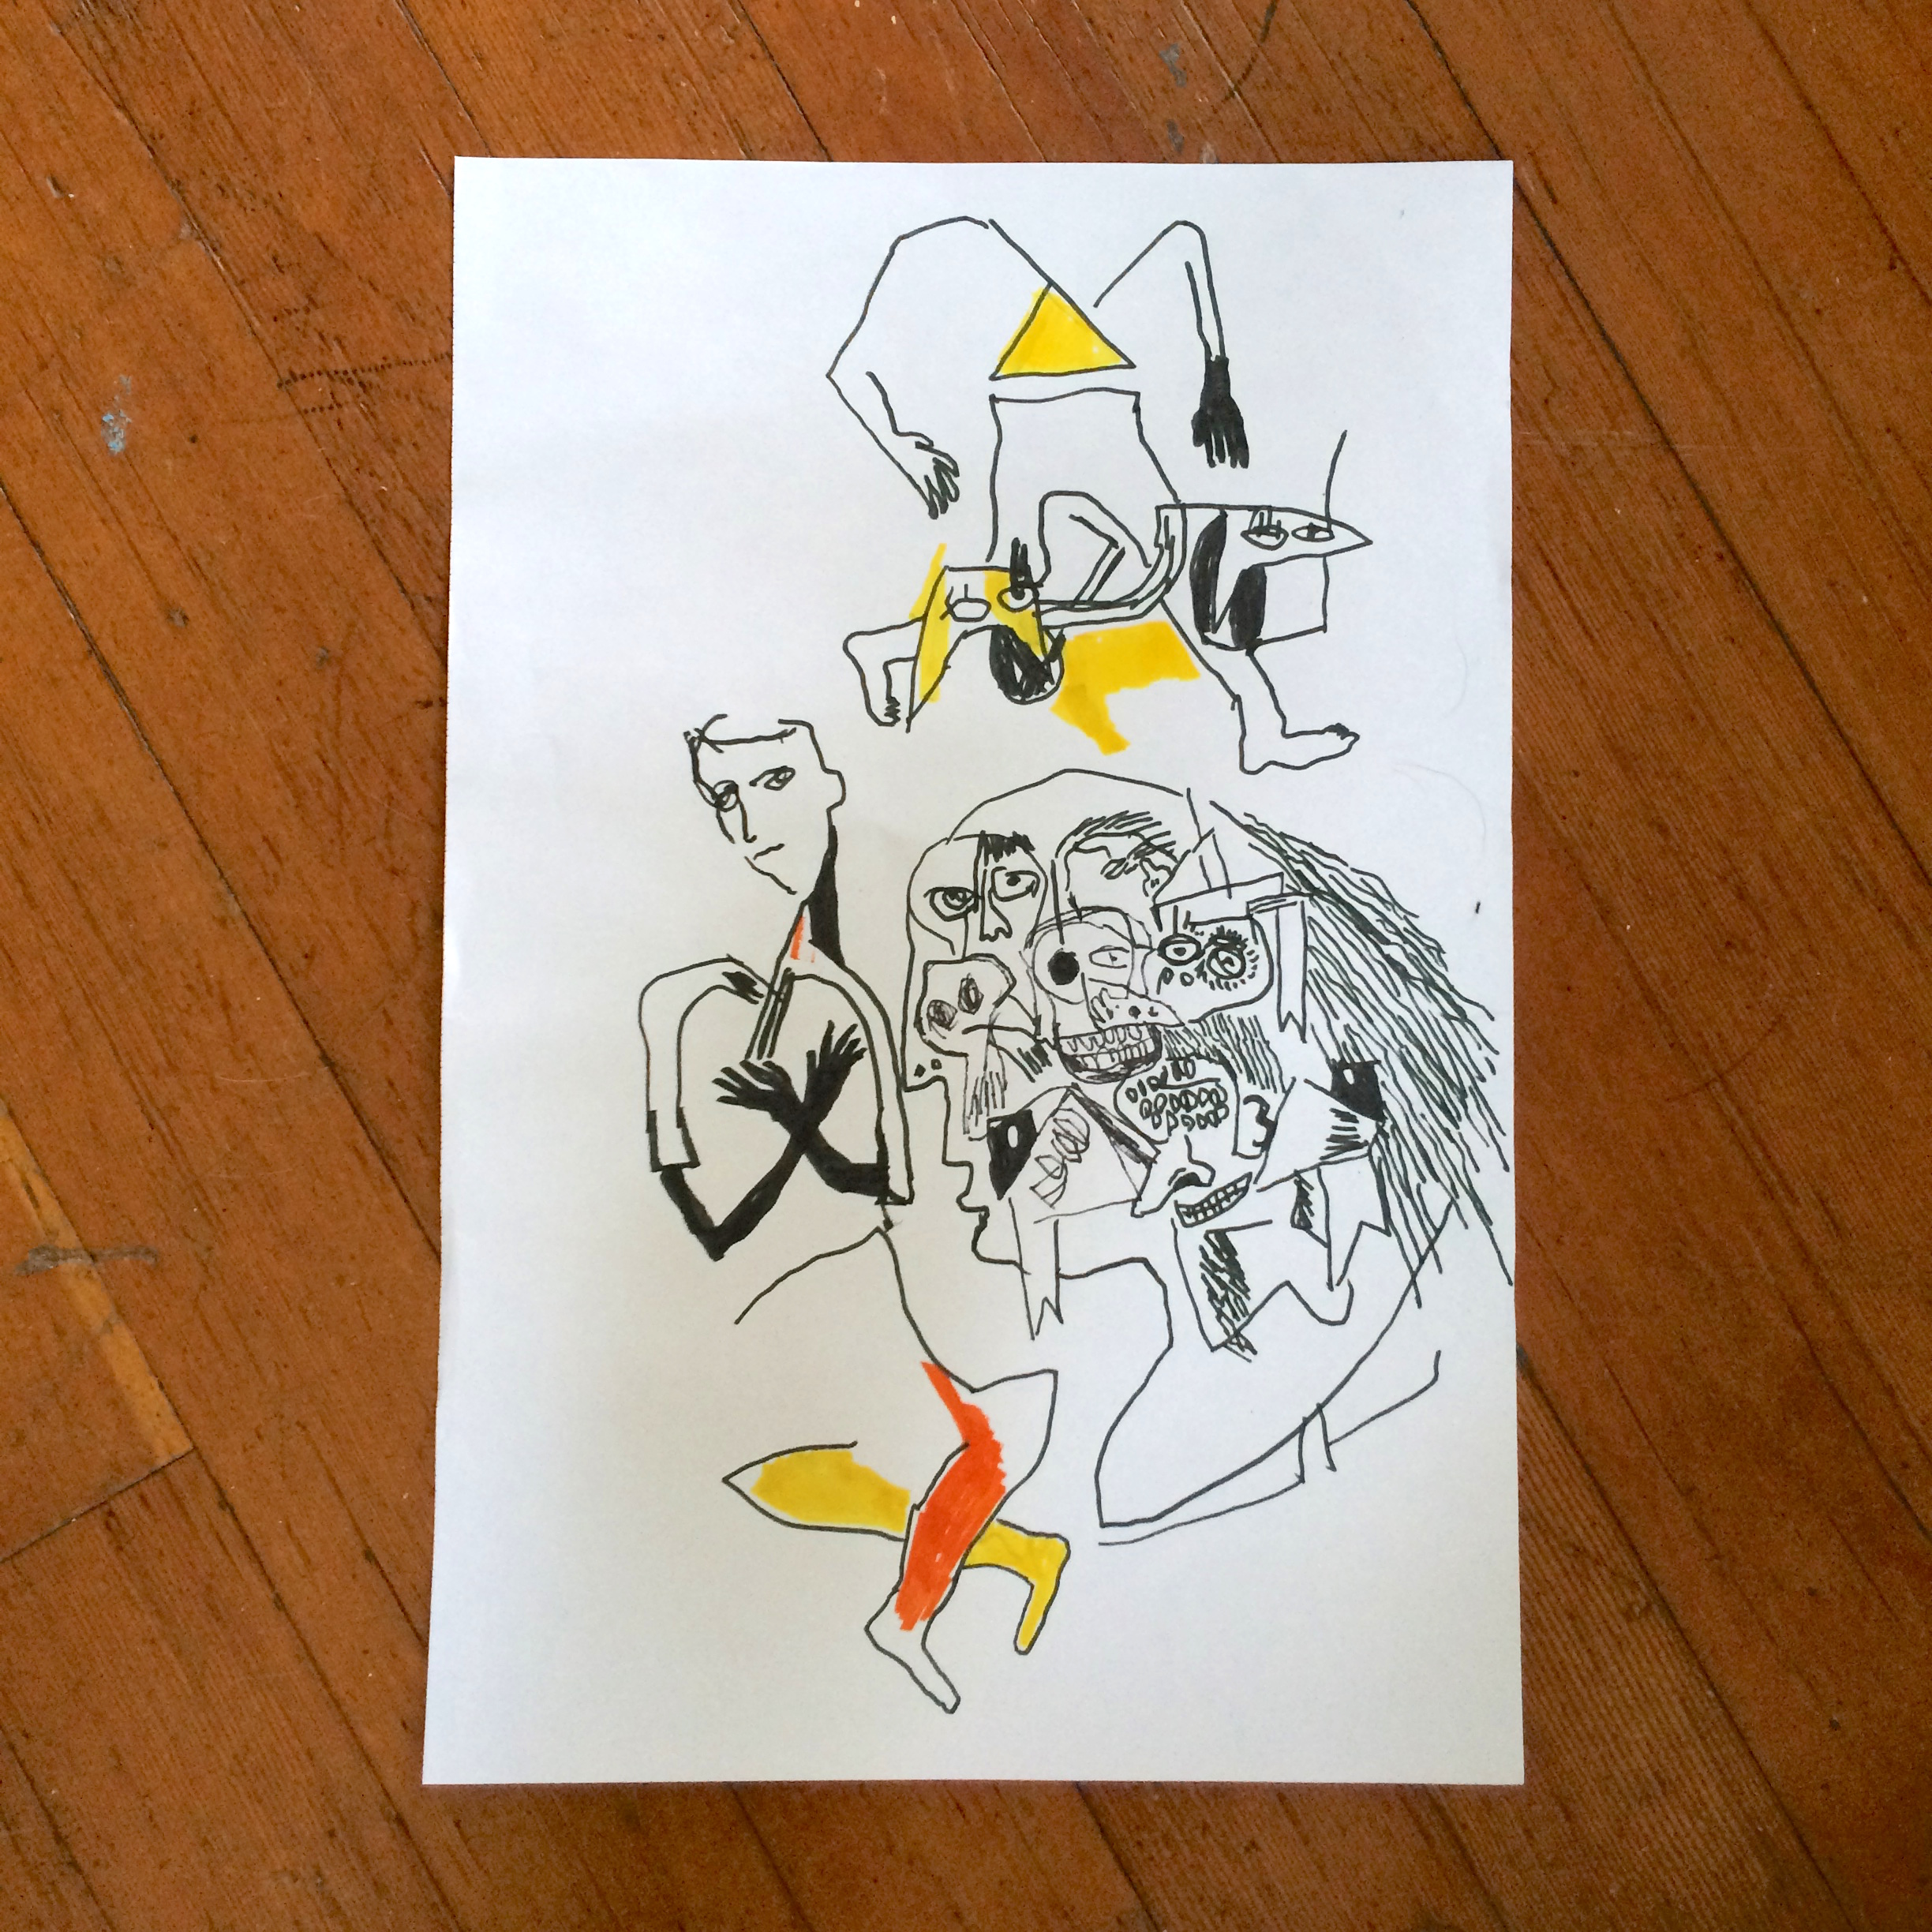 Gino Perez, Untitled (Doodle), 2002, marker on paper, 18 x 12 inches, $150